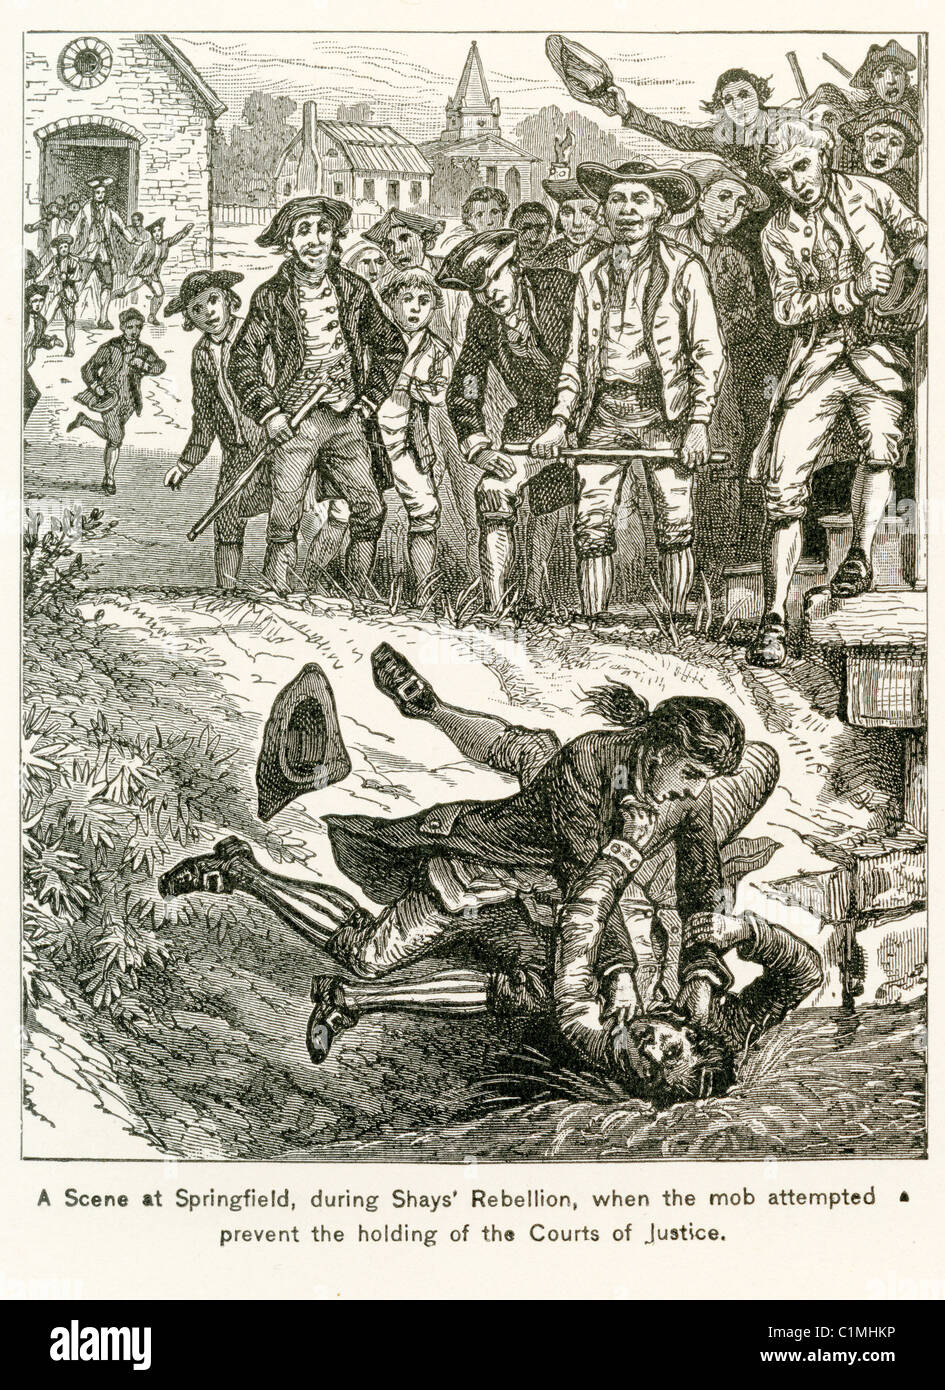 Old lithograph of Shays's Rebellion, Springfield, Massachusetts 1786 -1787